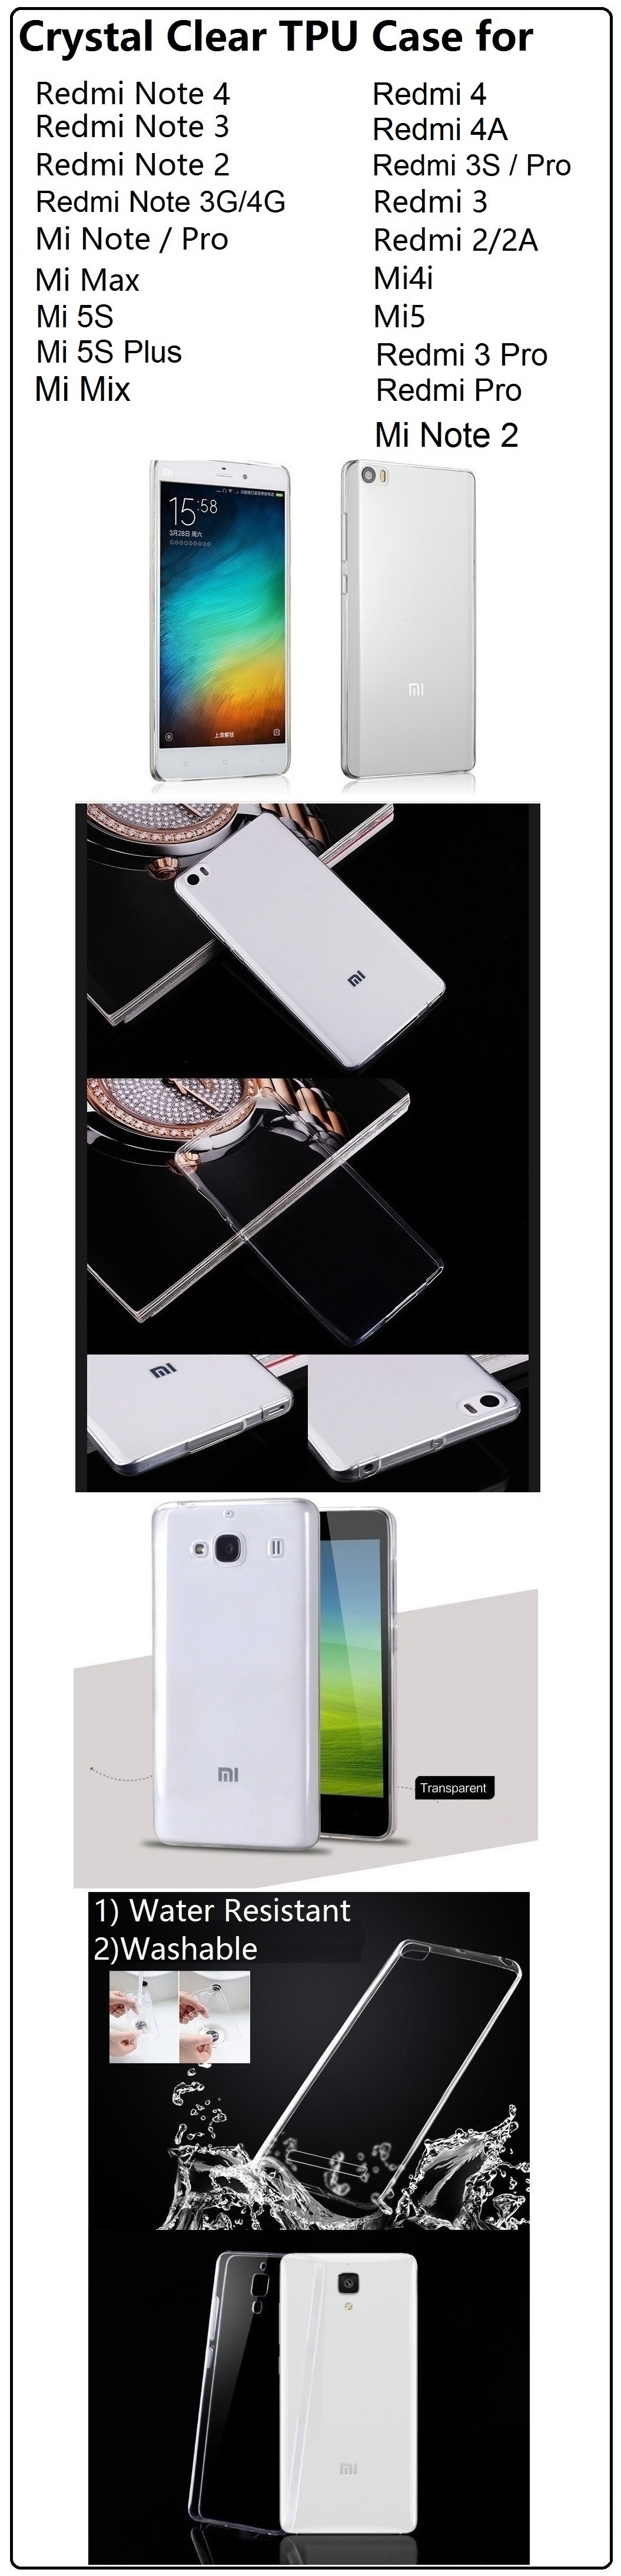 Every Need Want Day Backdoor Casing Belakang Xiaomi Redmi Note 3g 4g Black Led Portable Light